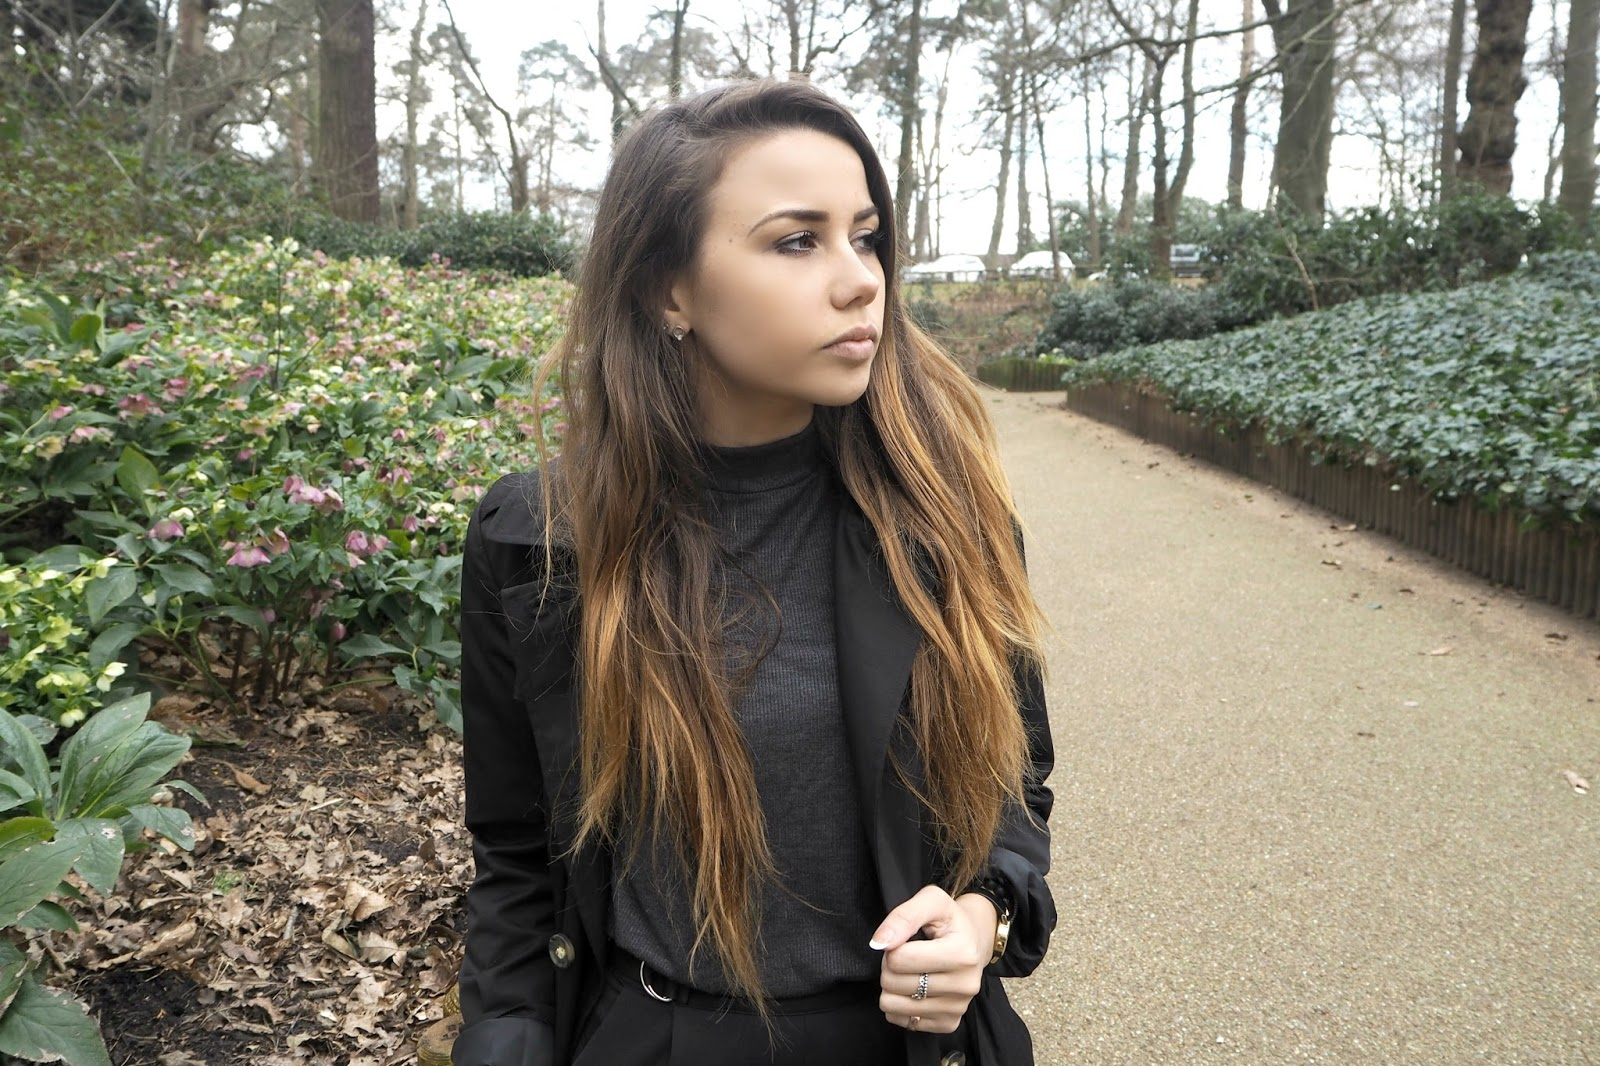 copper-garden-fashion-blogger-london-outfit-post